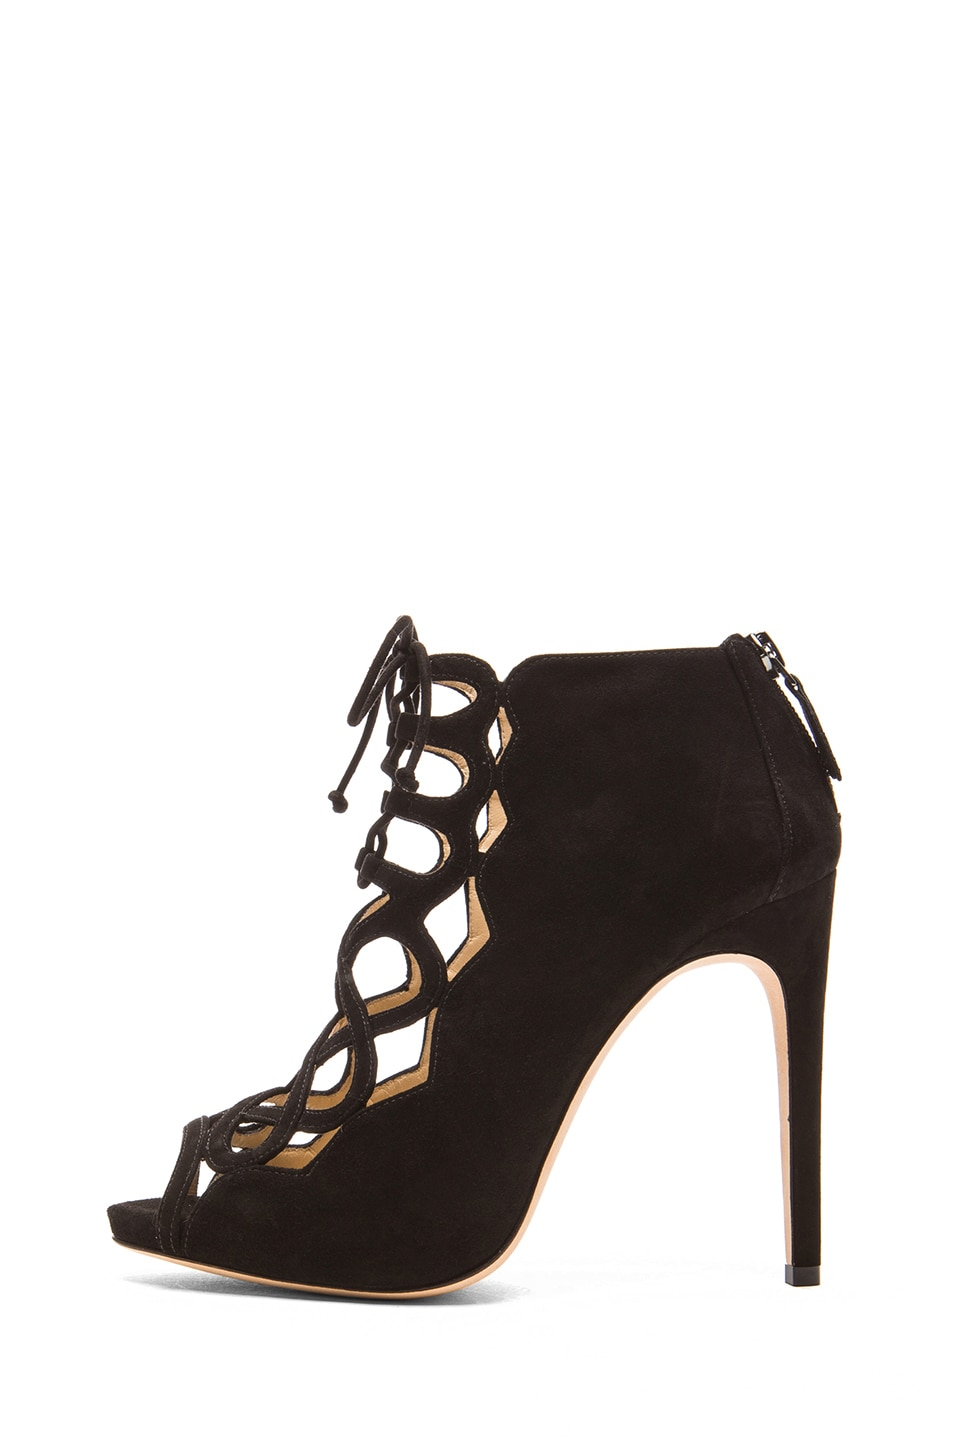 Image 1 of Alexandre Birman Gilca Suede Booties in Black